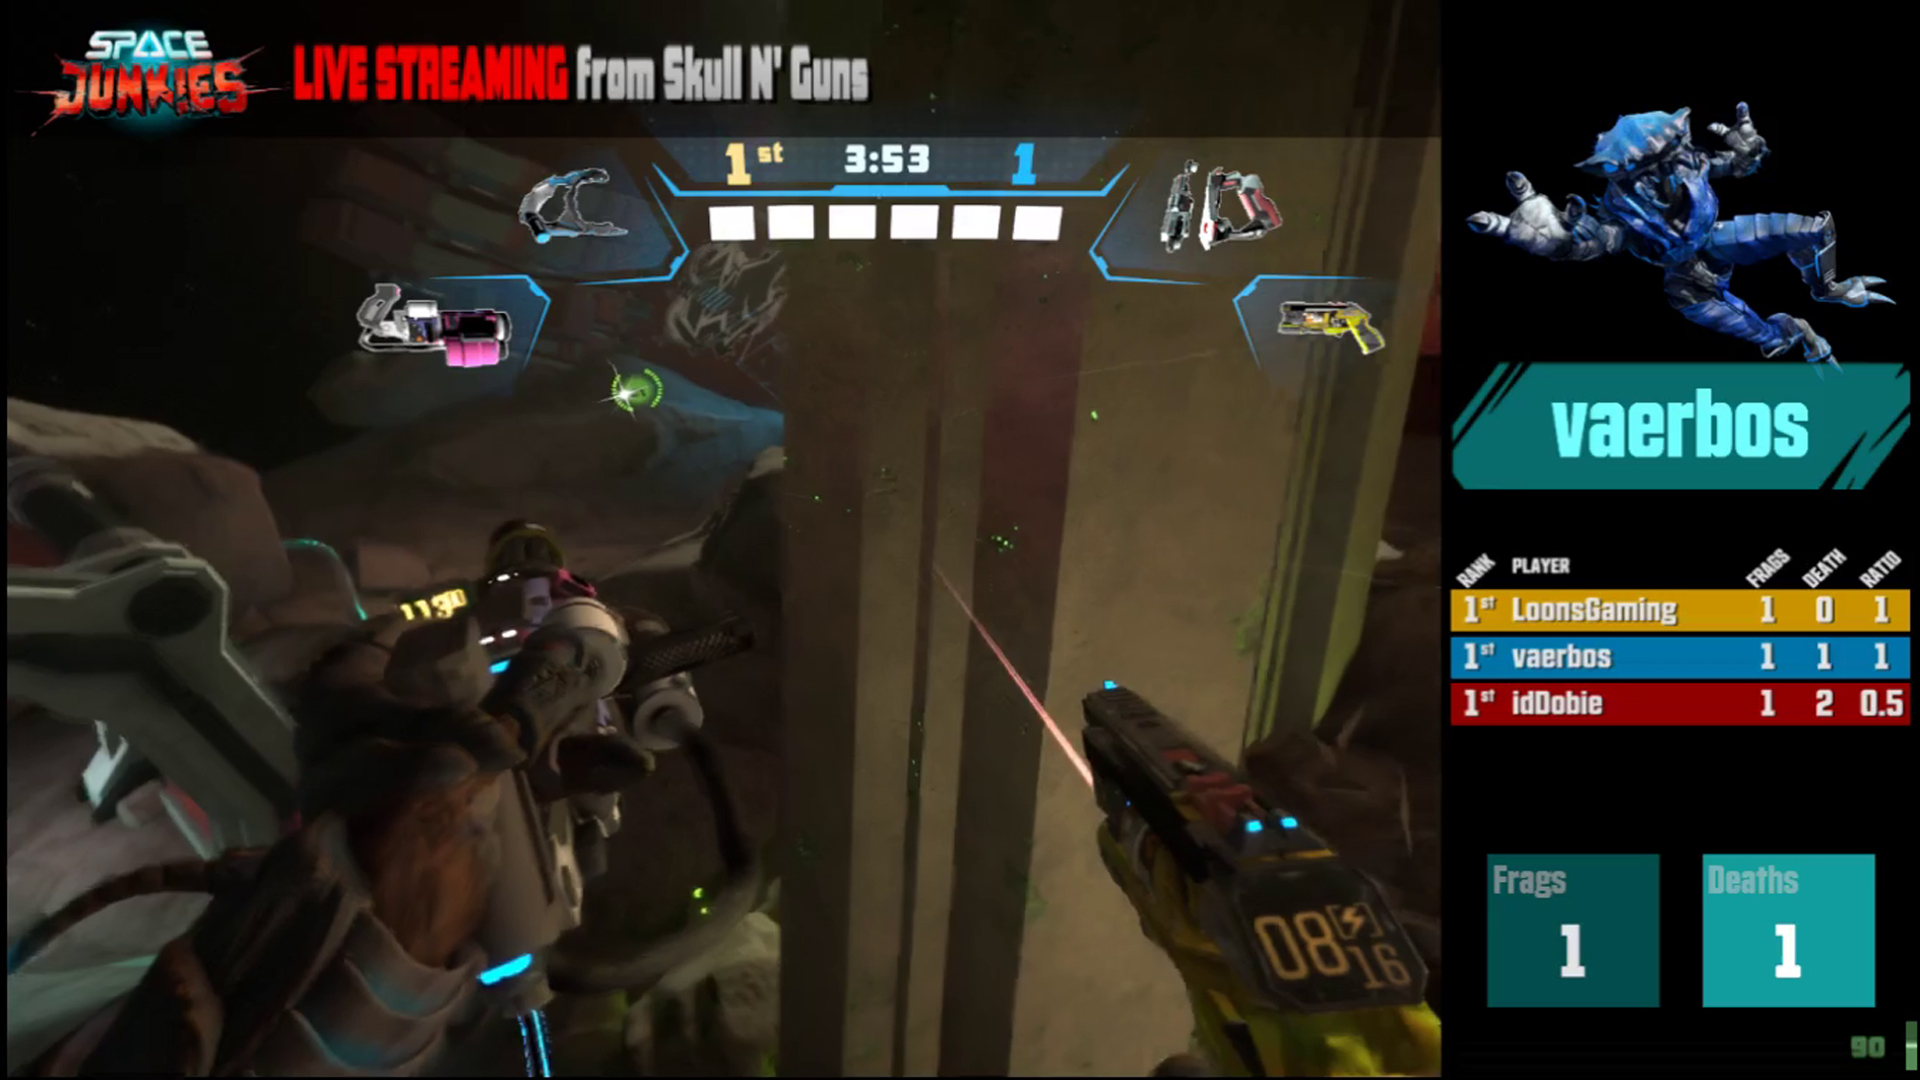 'Space Junkies' Open Beta to Land on All Major VR Headsets Tomorrow with Cross-play